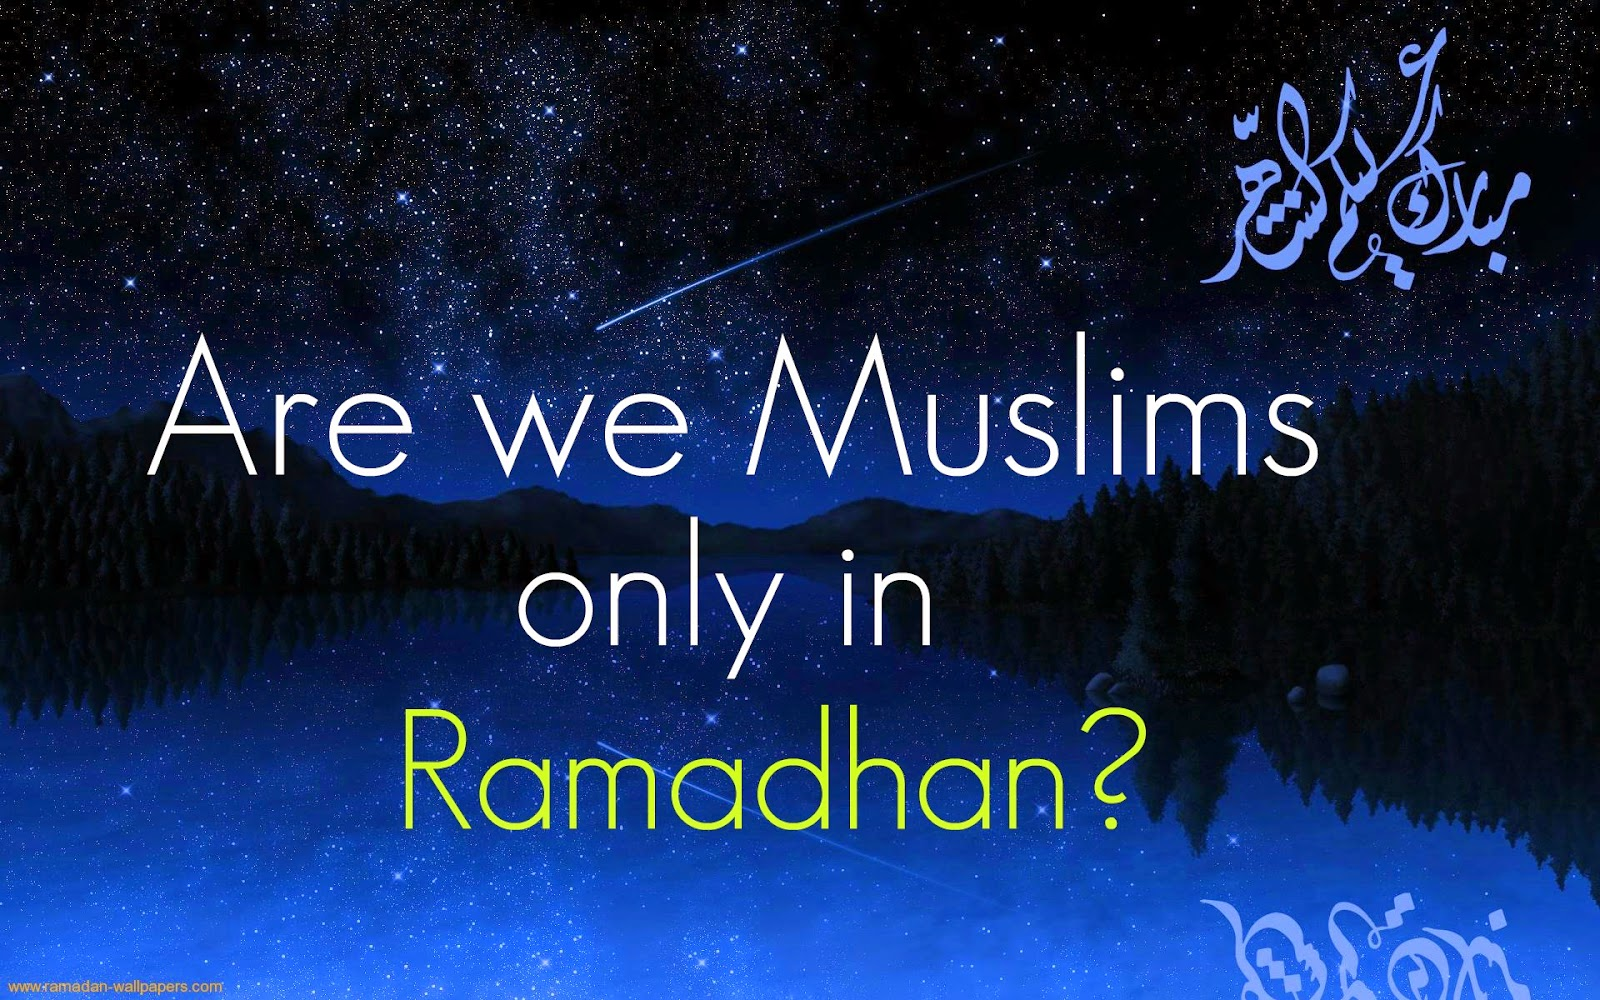 are we muslims only in ramadhan?